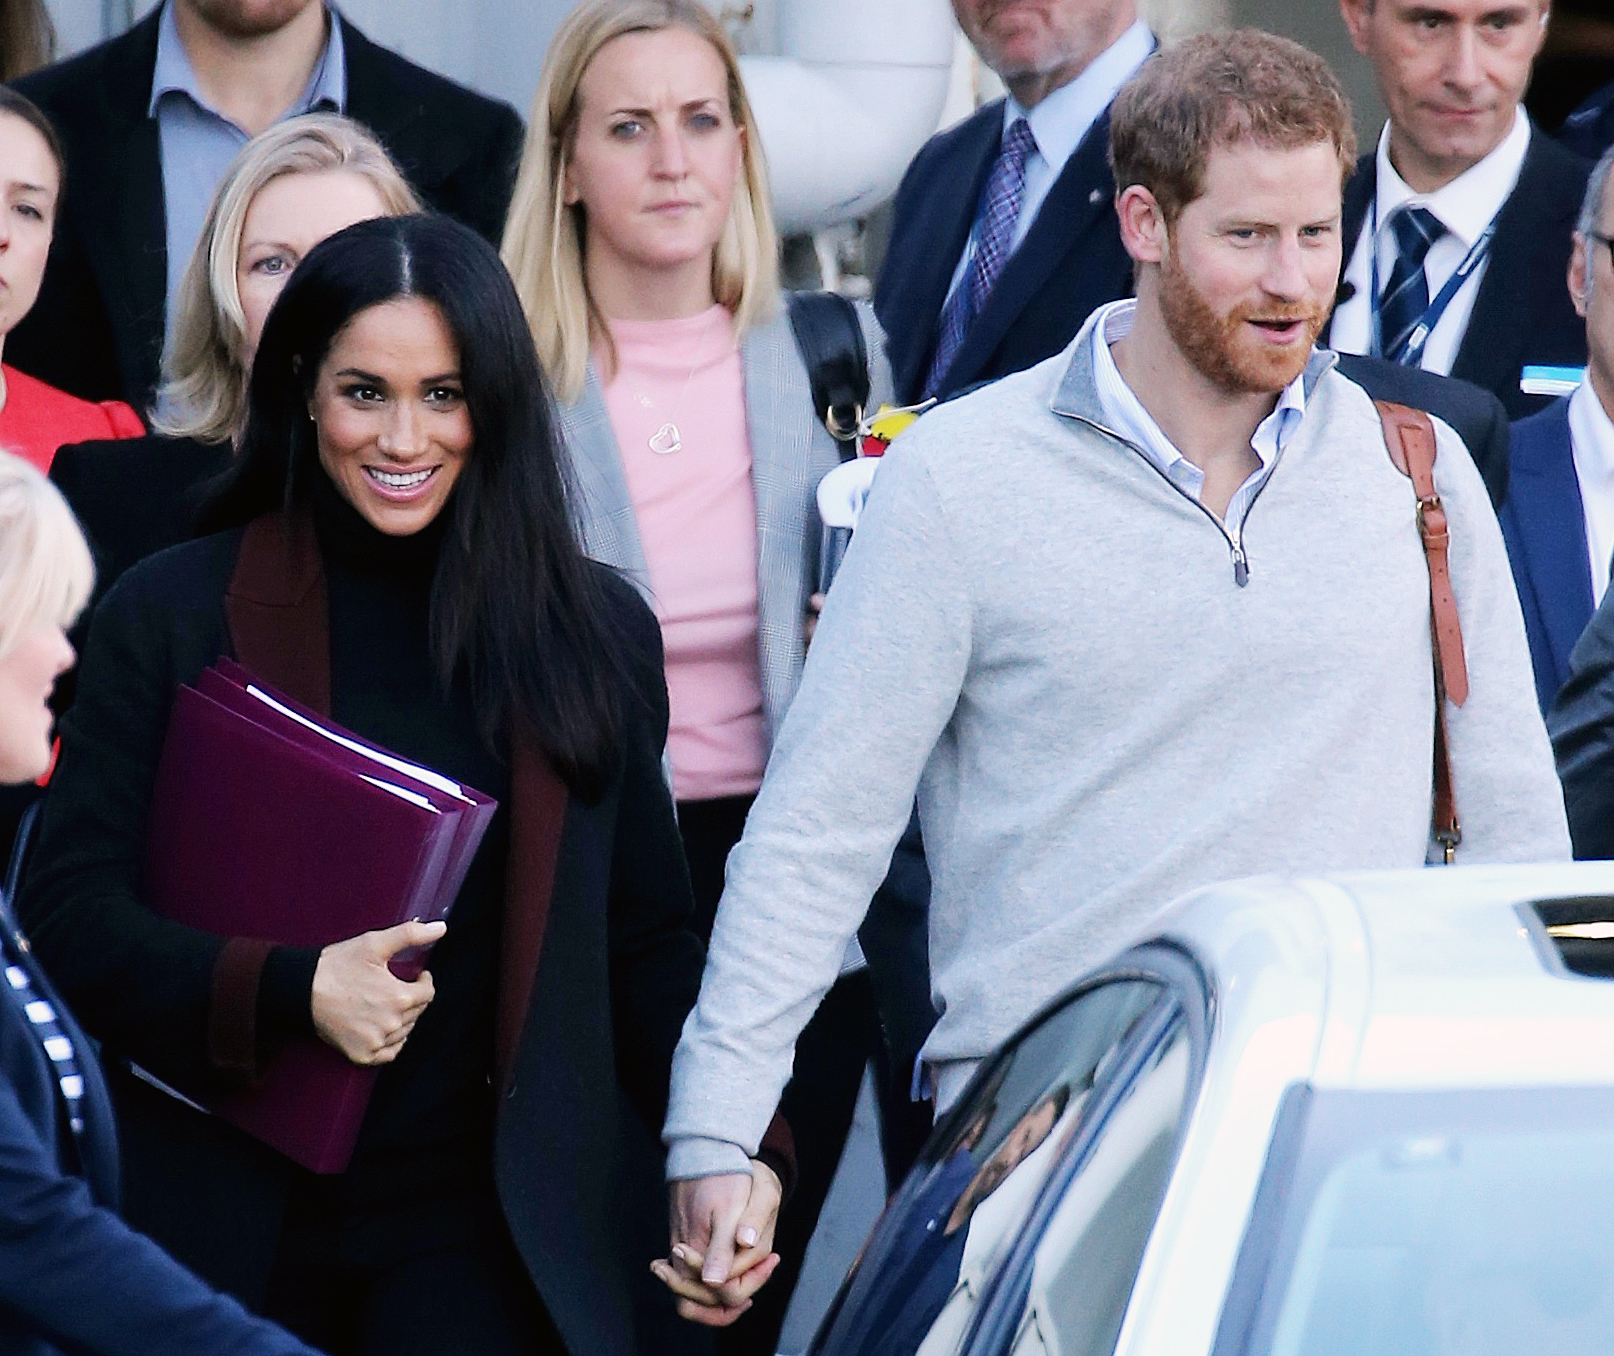 Prince Harry Duchess Meghan Sydney Arrival - The royal couple held hands as they arrived in Sydney after a 24-hour journey to Australia.